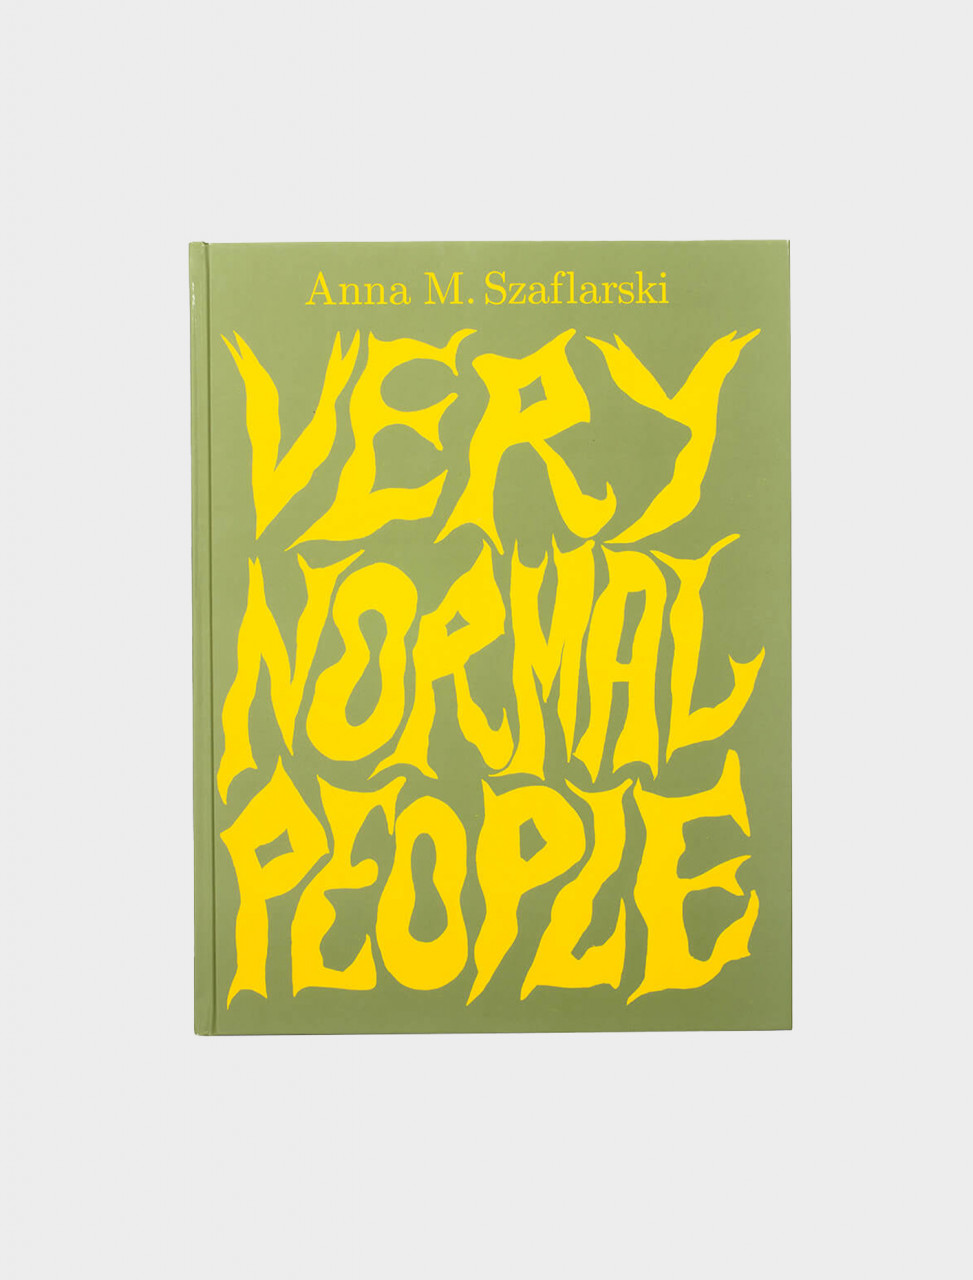 9783964360151 VERY NORMAL PEOPLE Anna Szaflarski